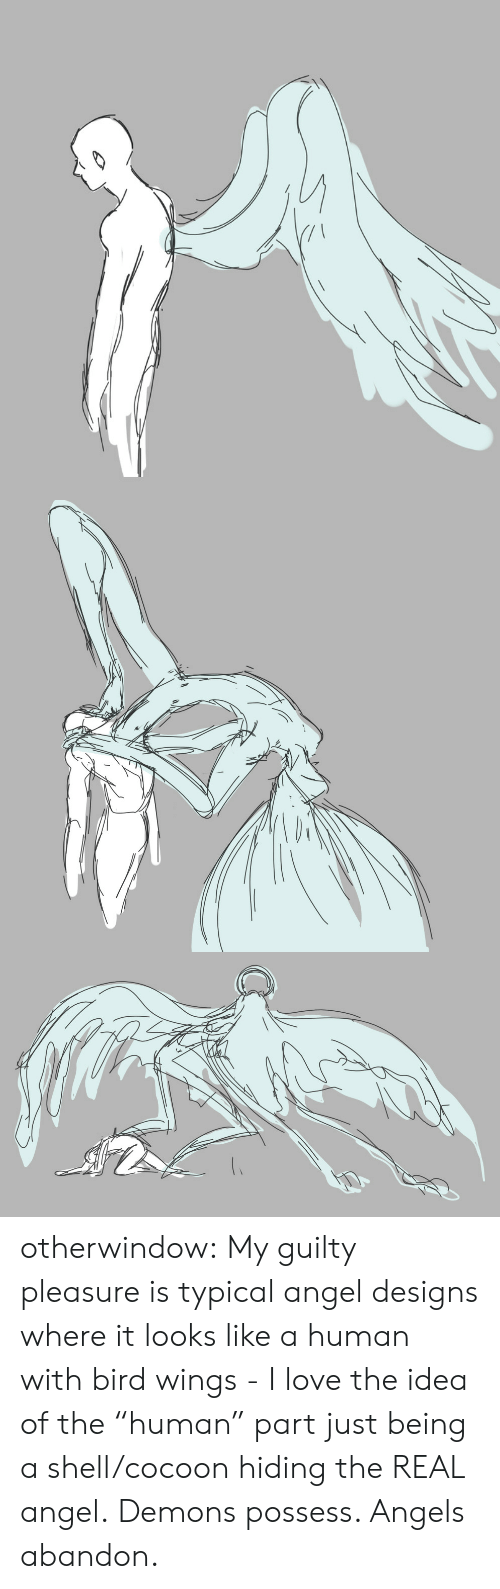 """Love, Target, and Tumblr: otherwindow:   My guilty pleasure is typical angel designs where it looks like a human with bird wings - I love the idea of the """"human"""" part just being a shell/cocoon hiding the REAL angel.   Demons possess. Angels abandon."""